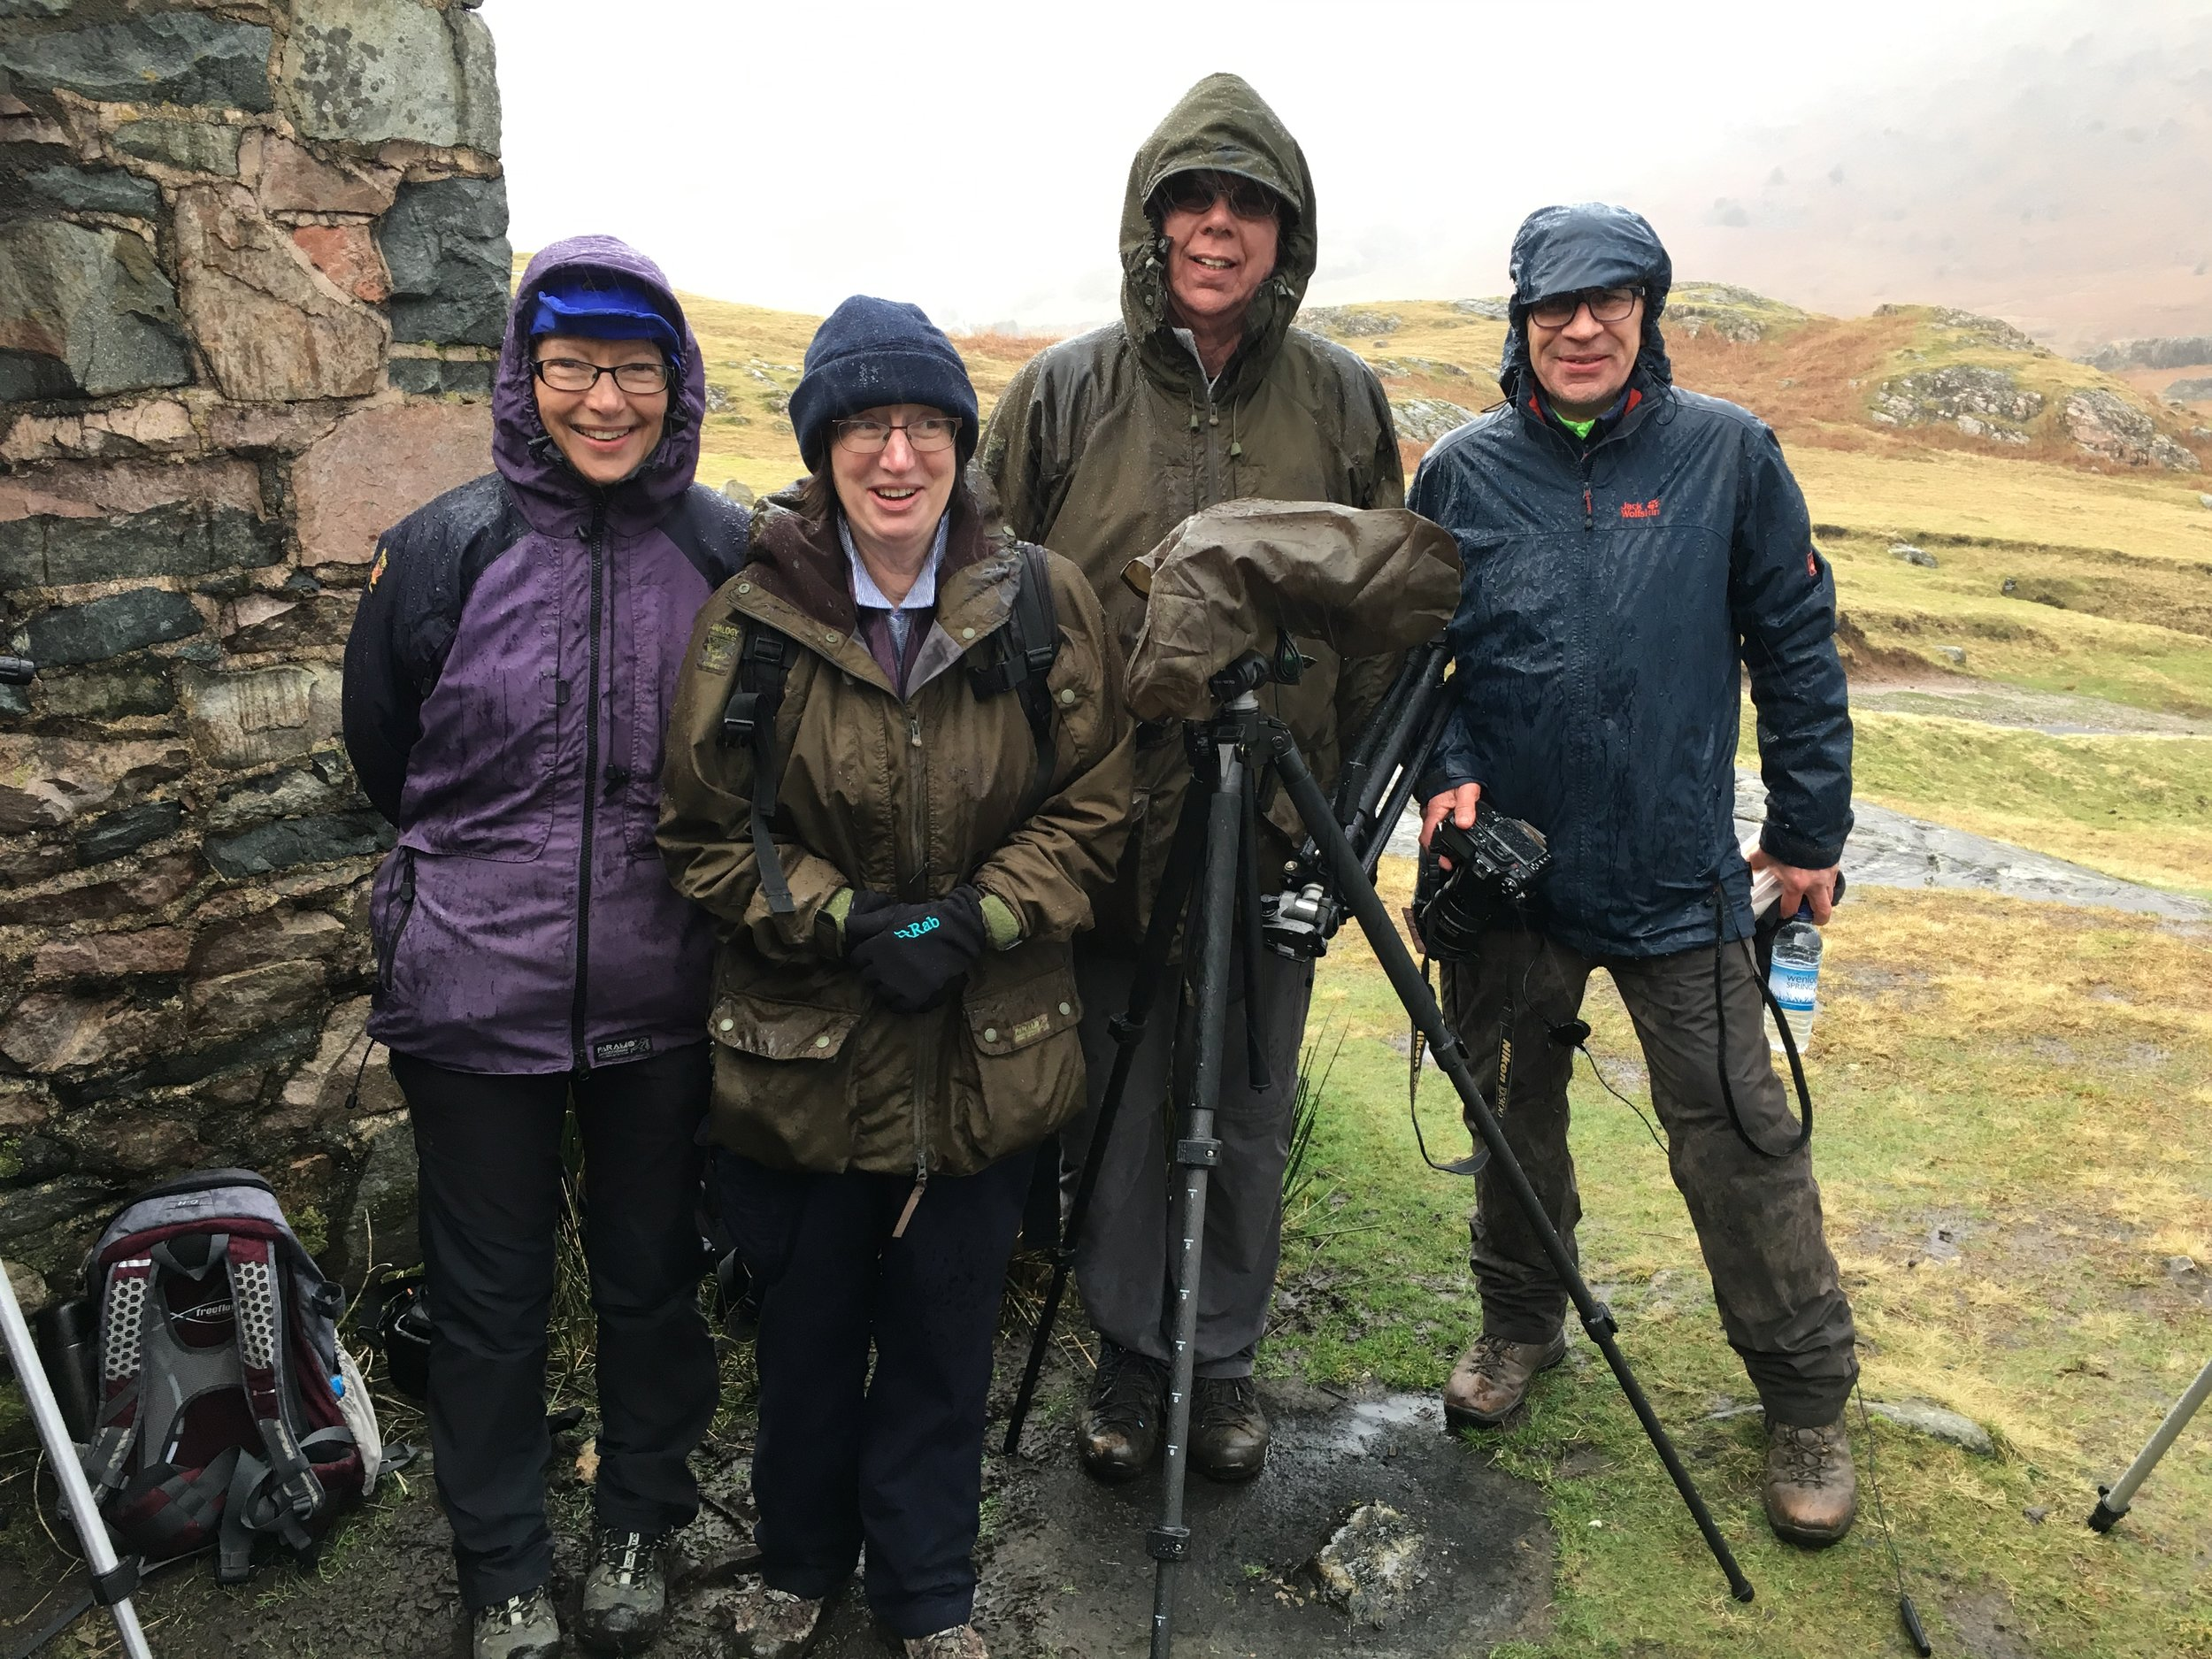 Helen, Judith, John and Mark. All 'togged up' in the rain on their workshop. Nicely summed up in their own words, 'learnt a lot and what a great day'.